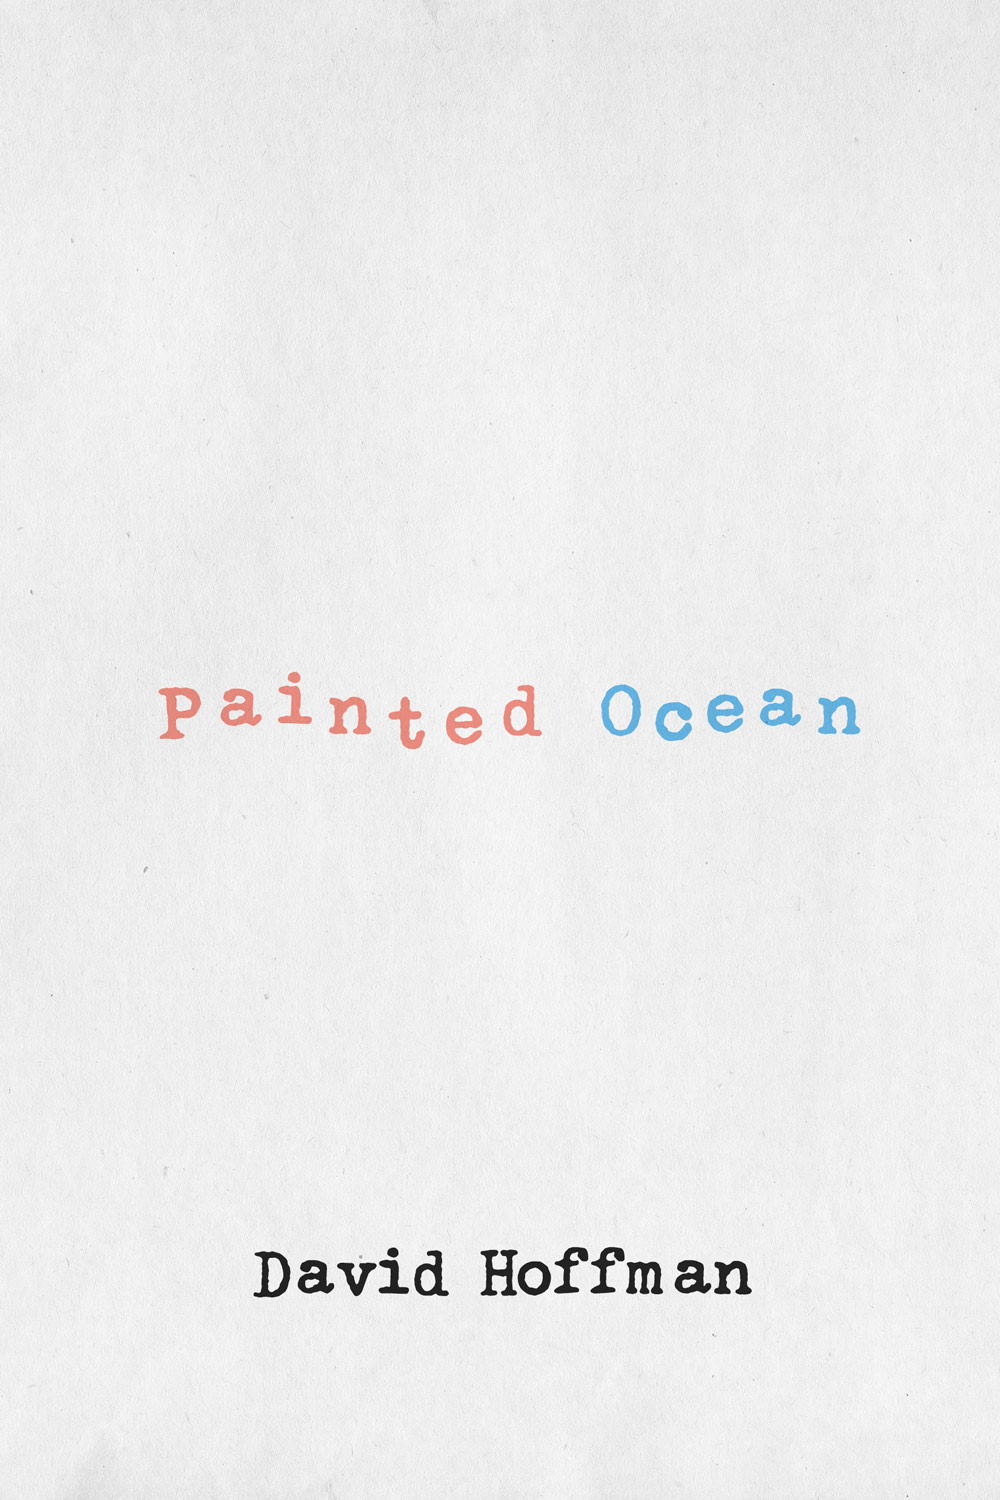 Book-Placeholders-Type-Painted-Ocean.jpg